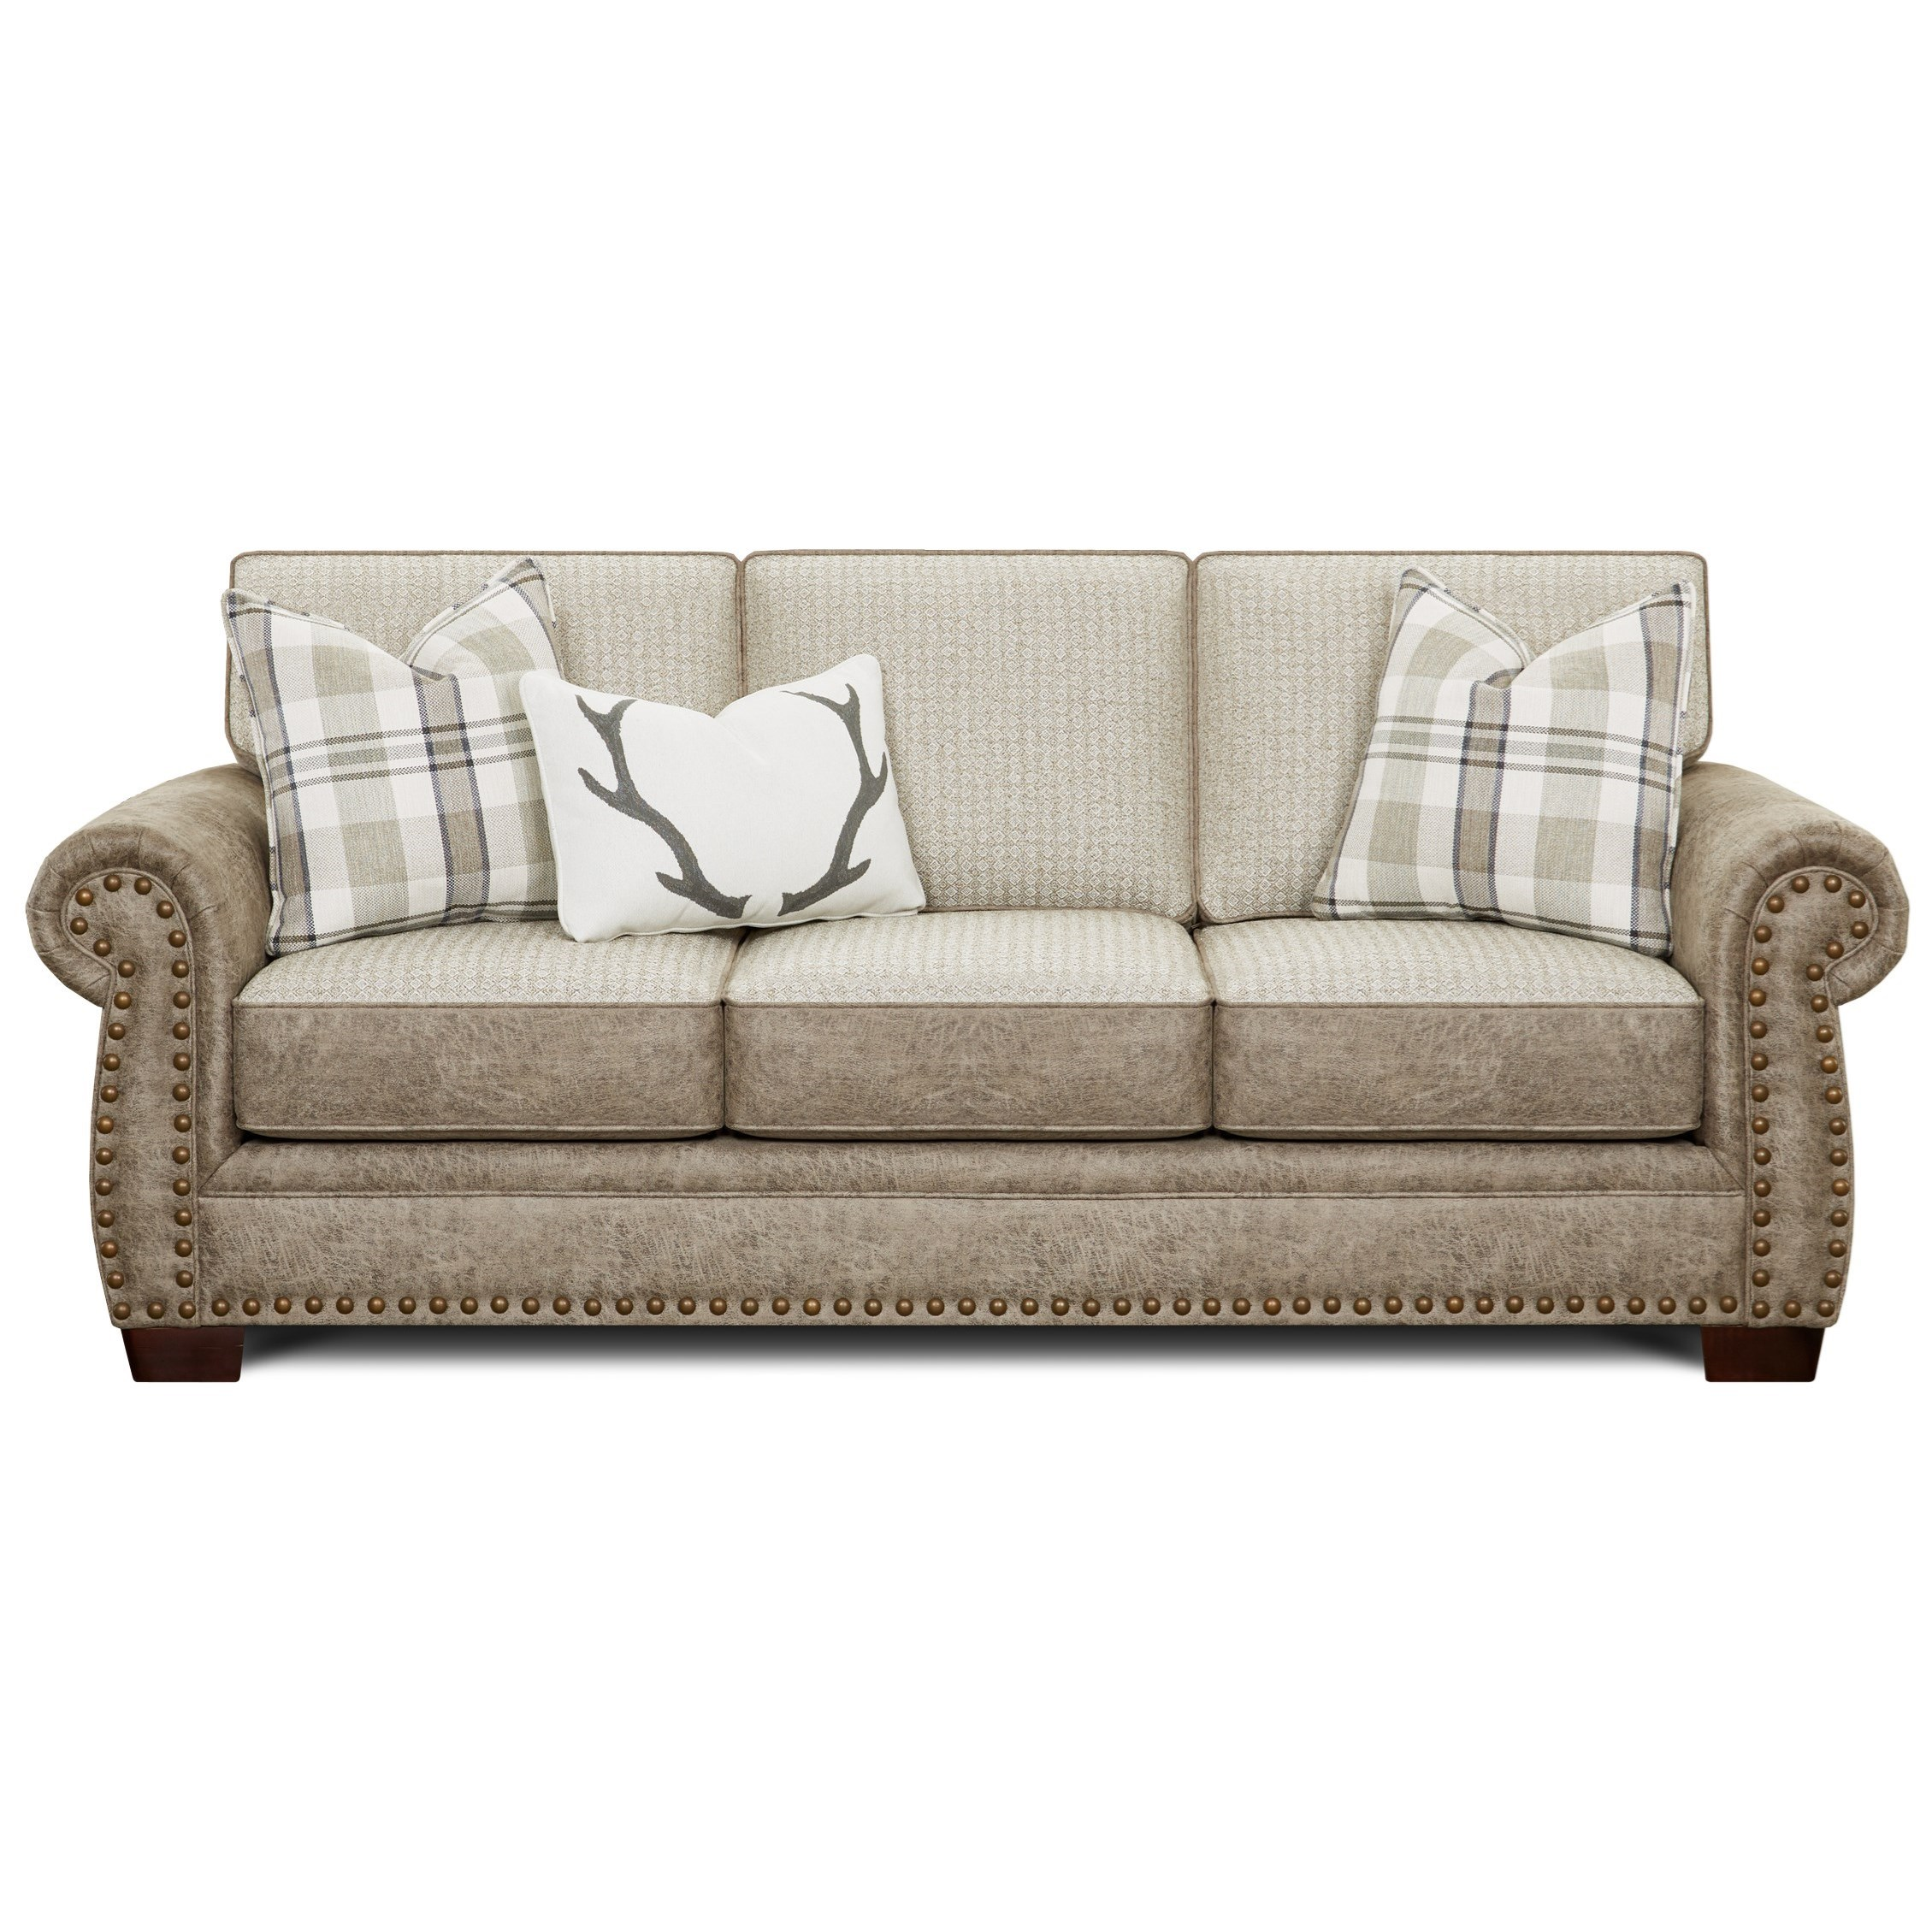 22-00 Sleeper Sofa by Fusion Furniture at Prime Brothers Furniture